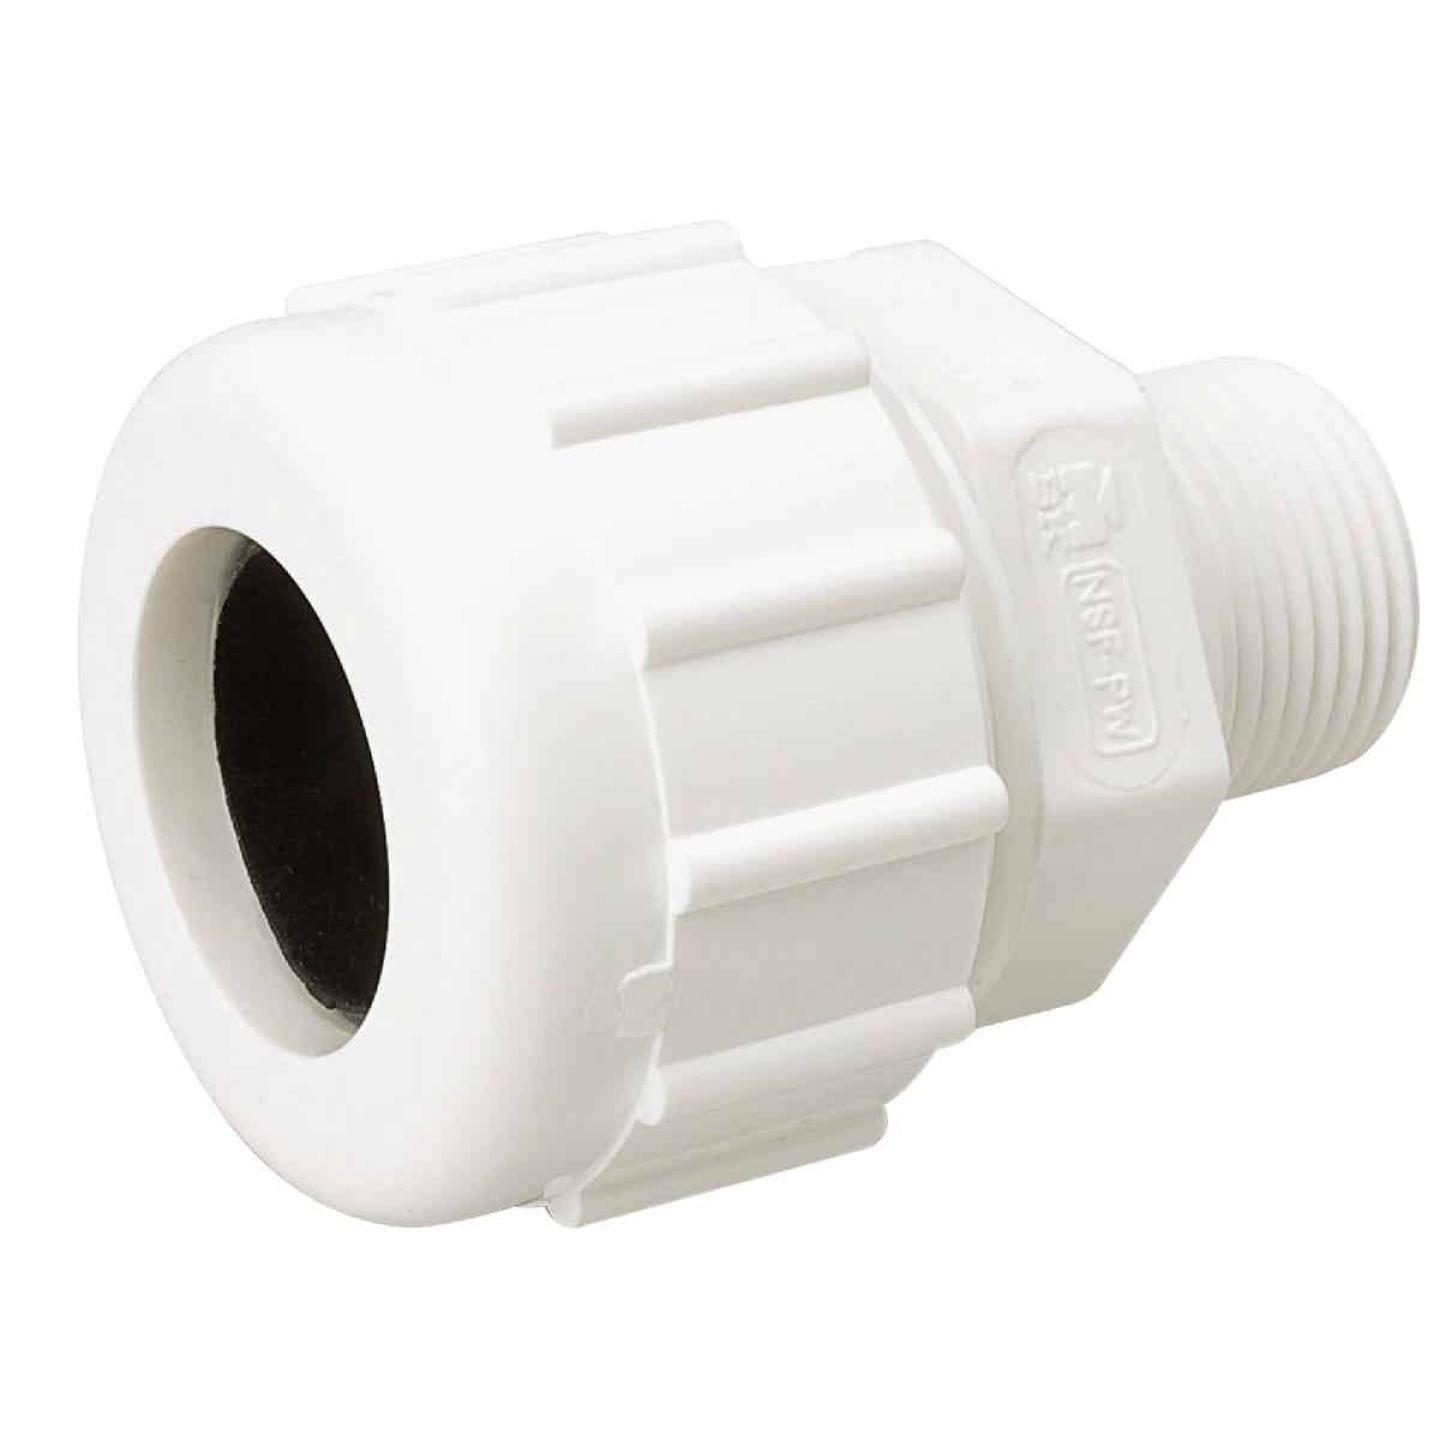 B&K 3/4 In. MIPT Schedule 40 Compression Union PVC Adapter Image 1